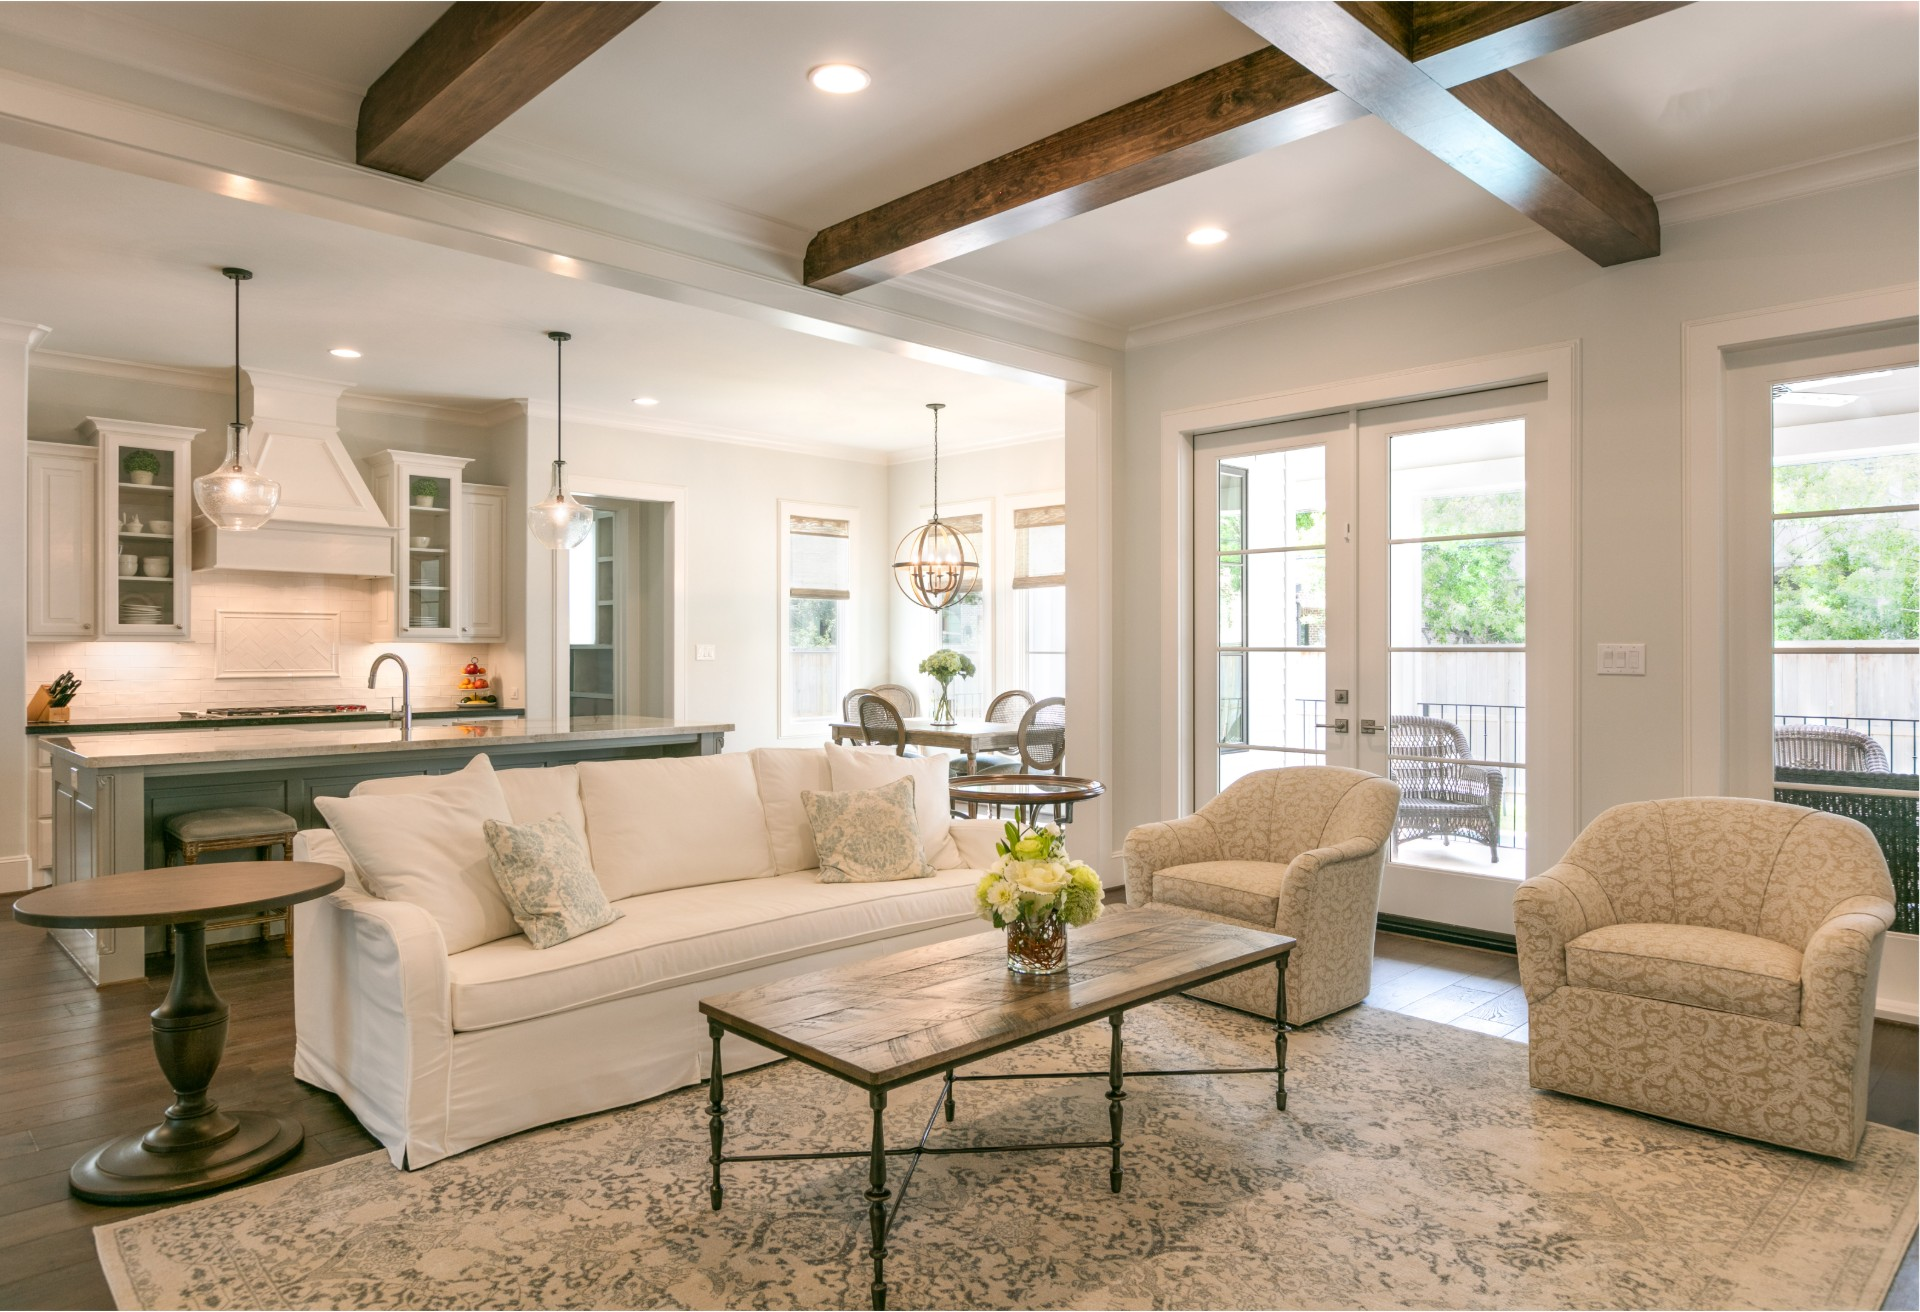 Braes Heights Transitional - Living Room - BuildFBG